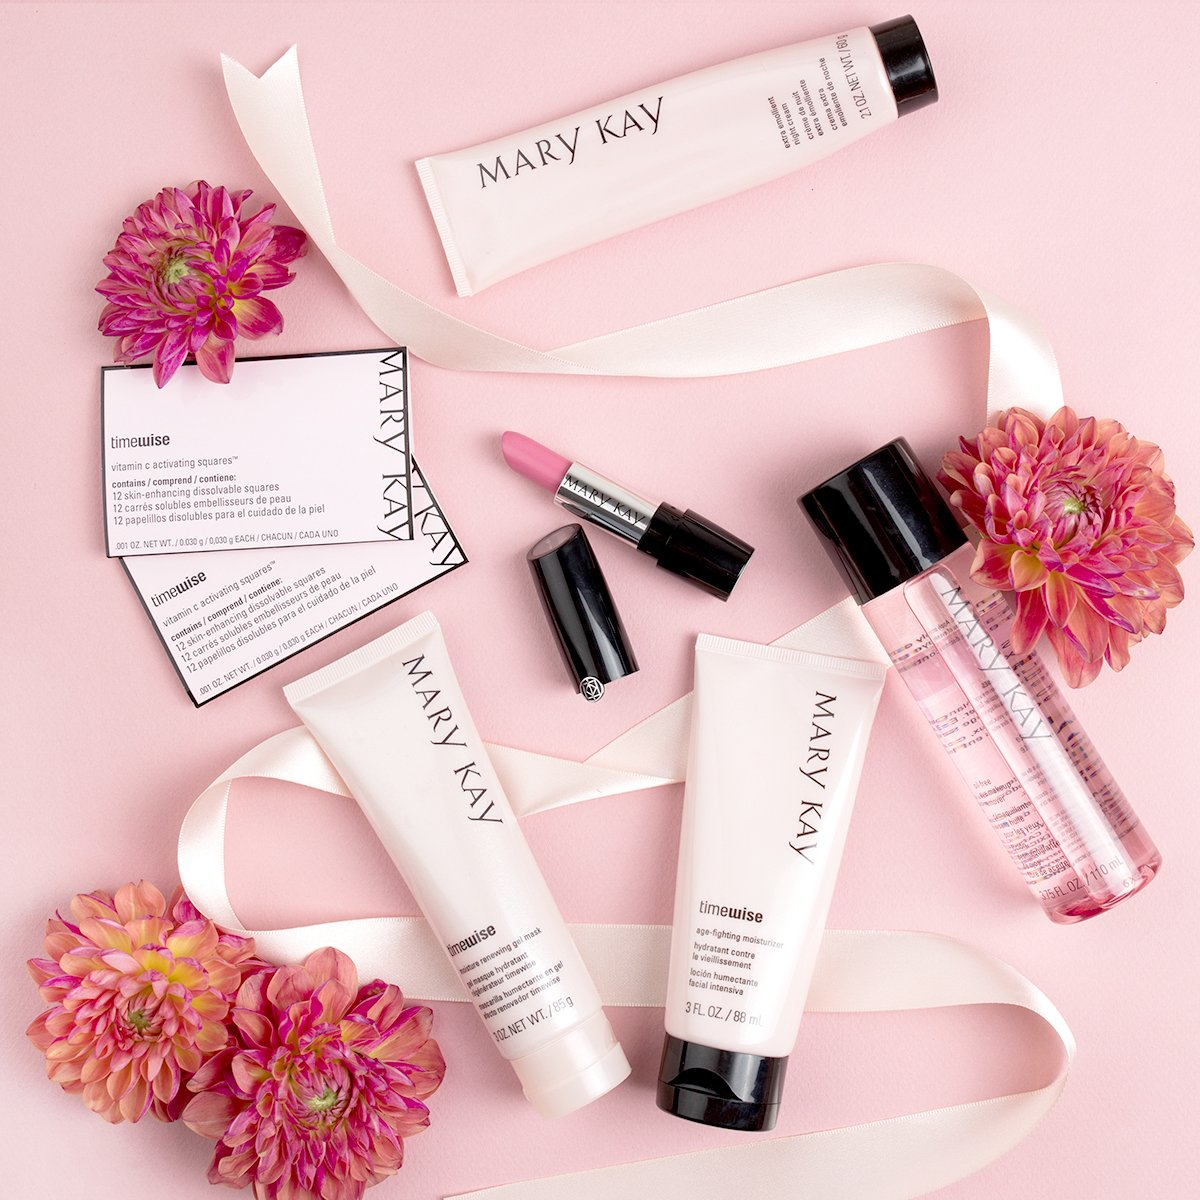 Image result for Mary Kay